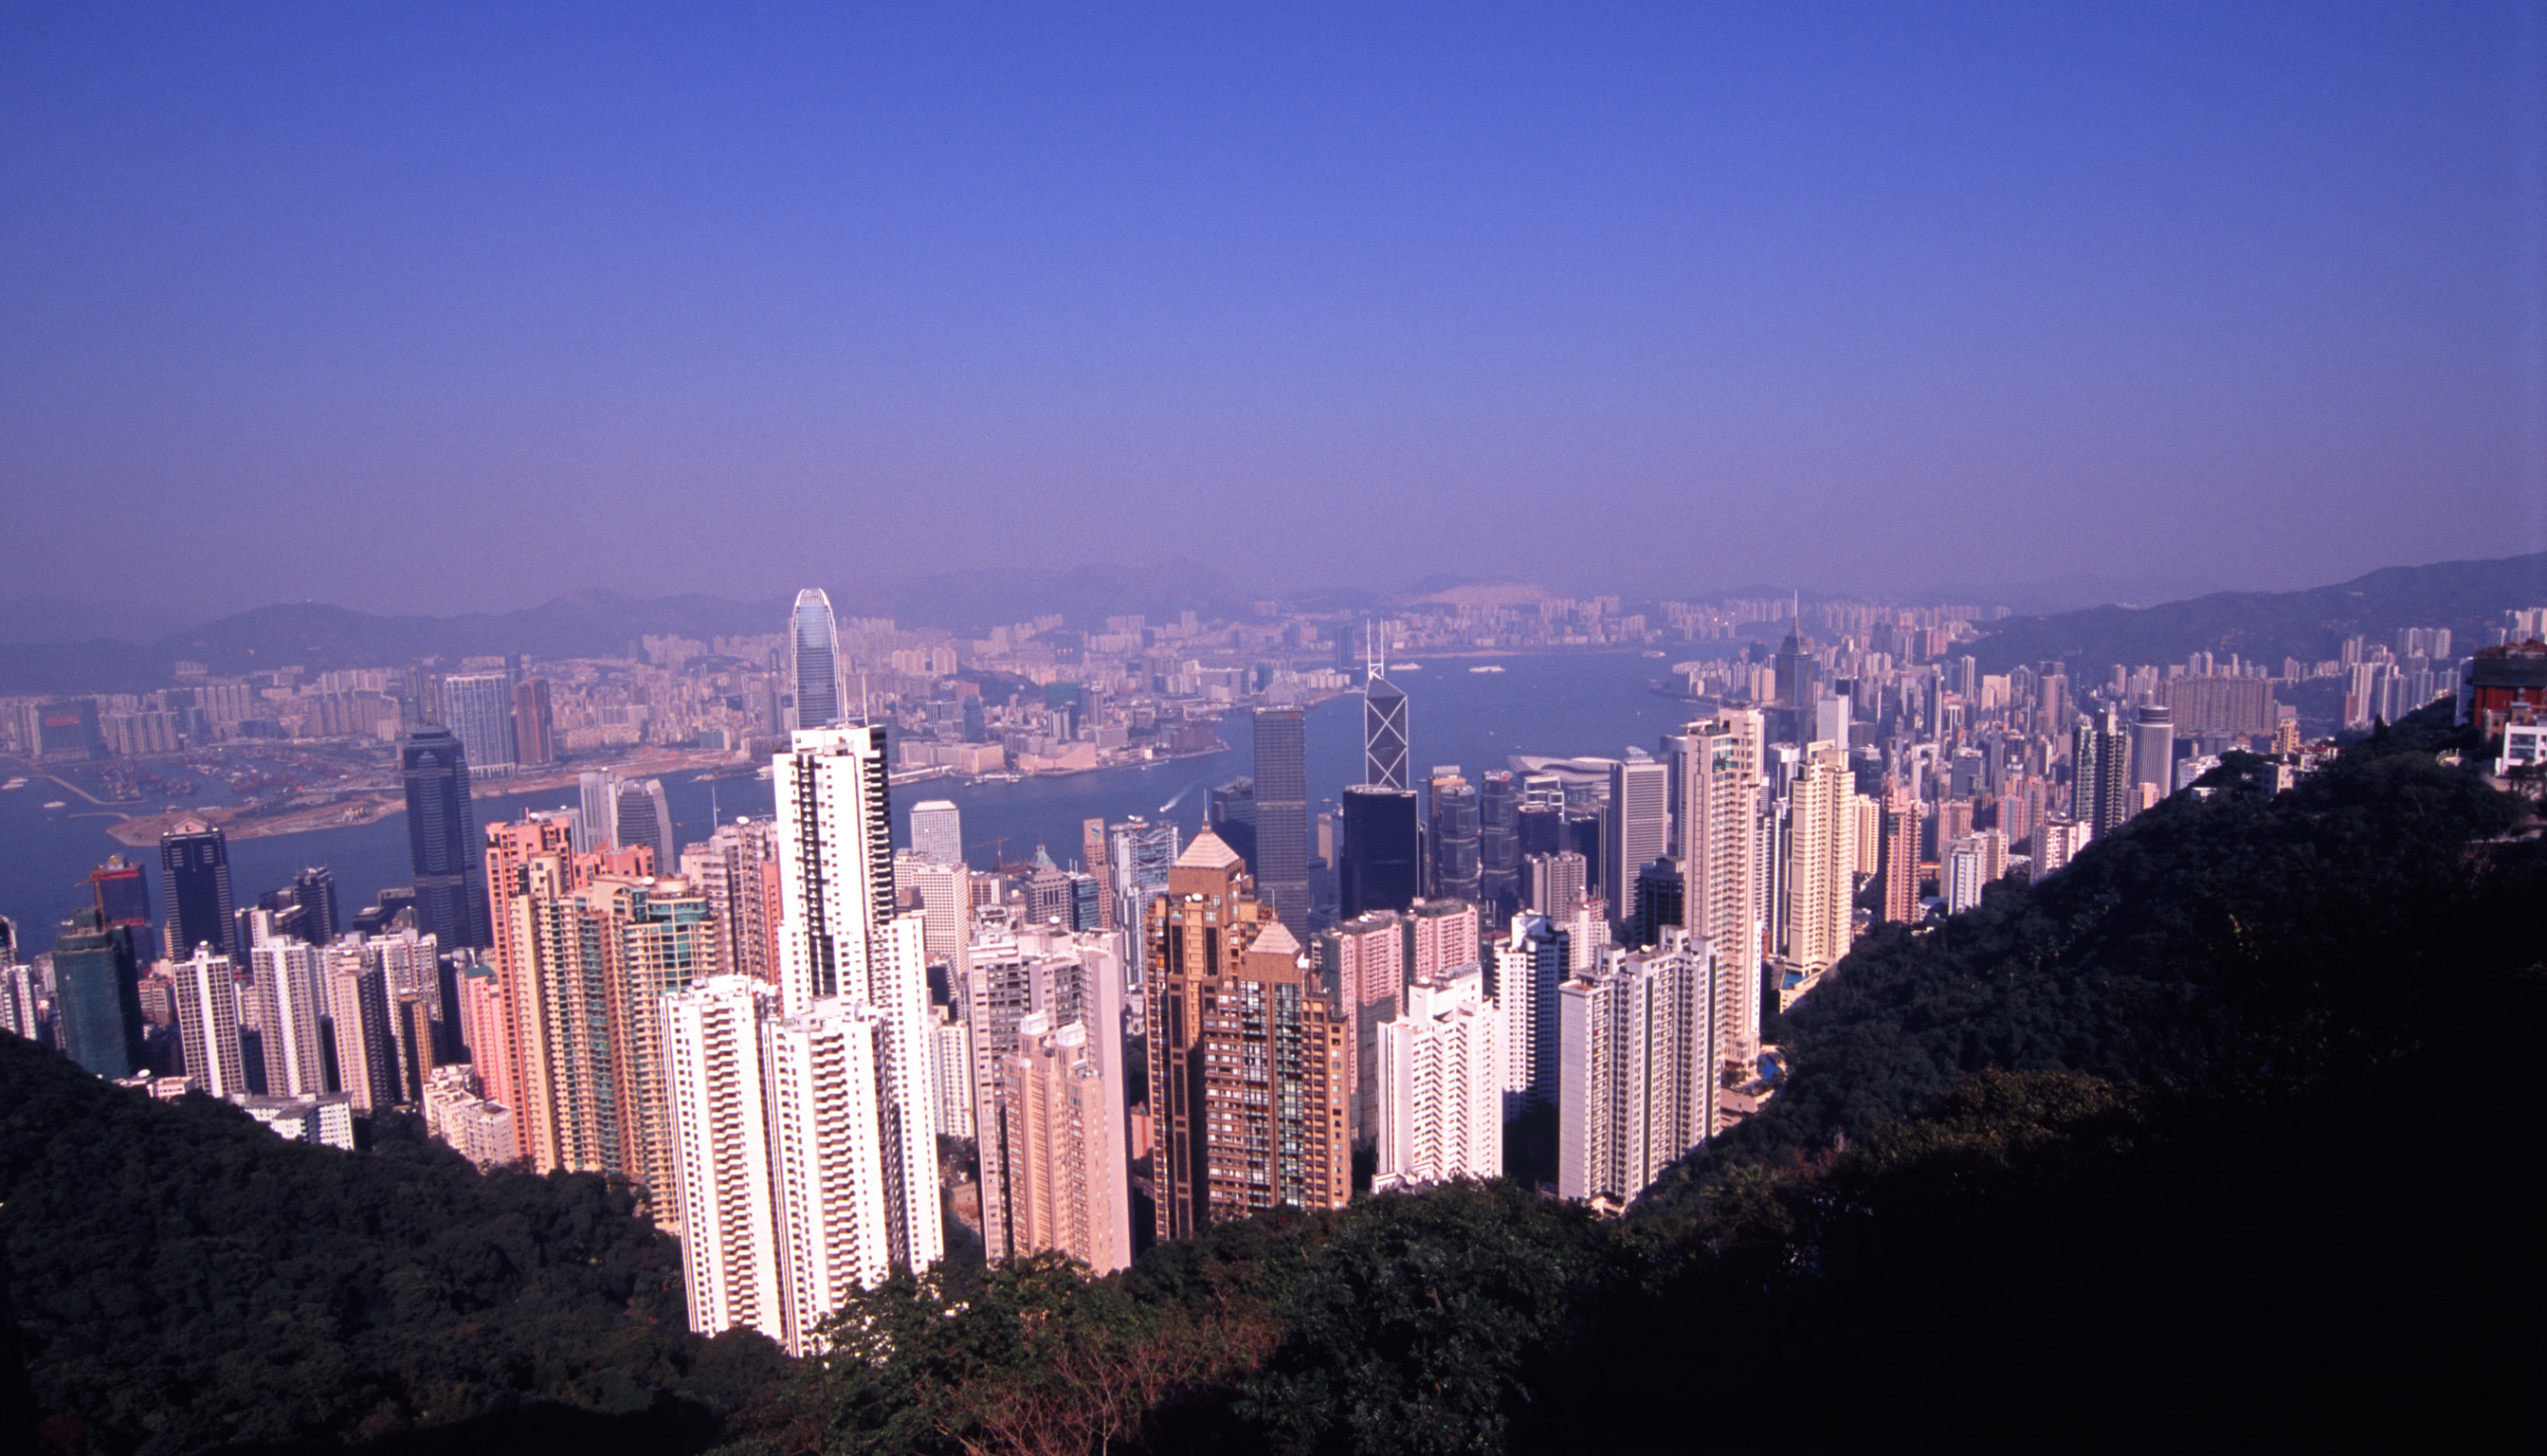 Panorama View of Architectural Highrise Buildings in the City of Hong Kong, China.